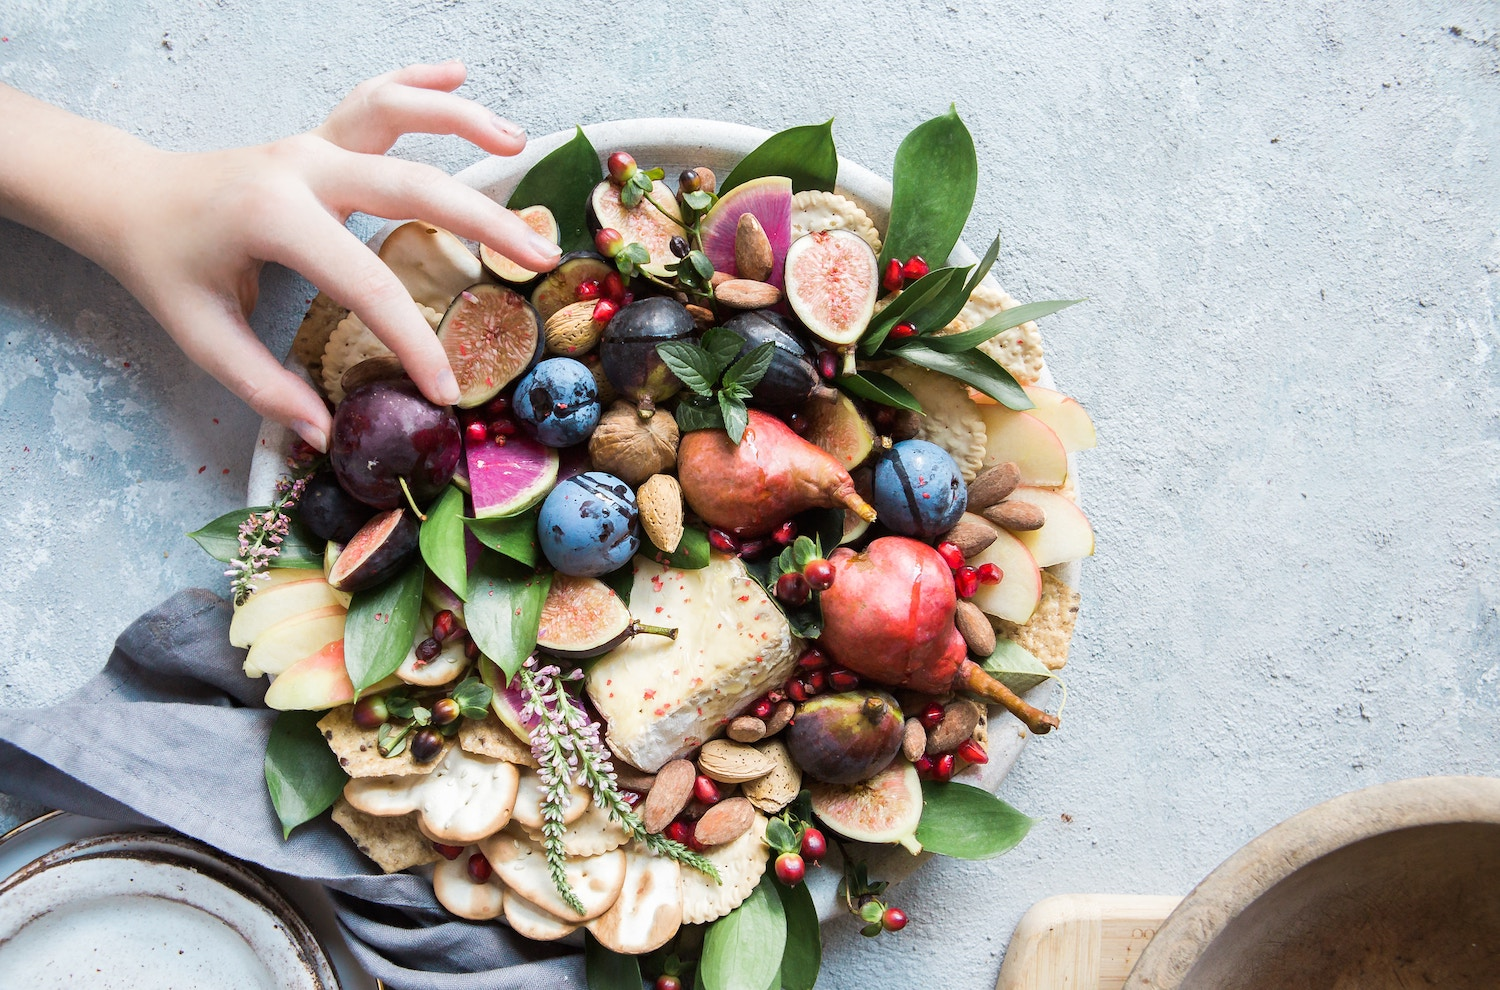 The wellness trends you need to get on this year